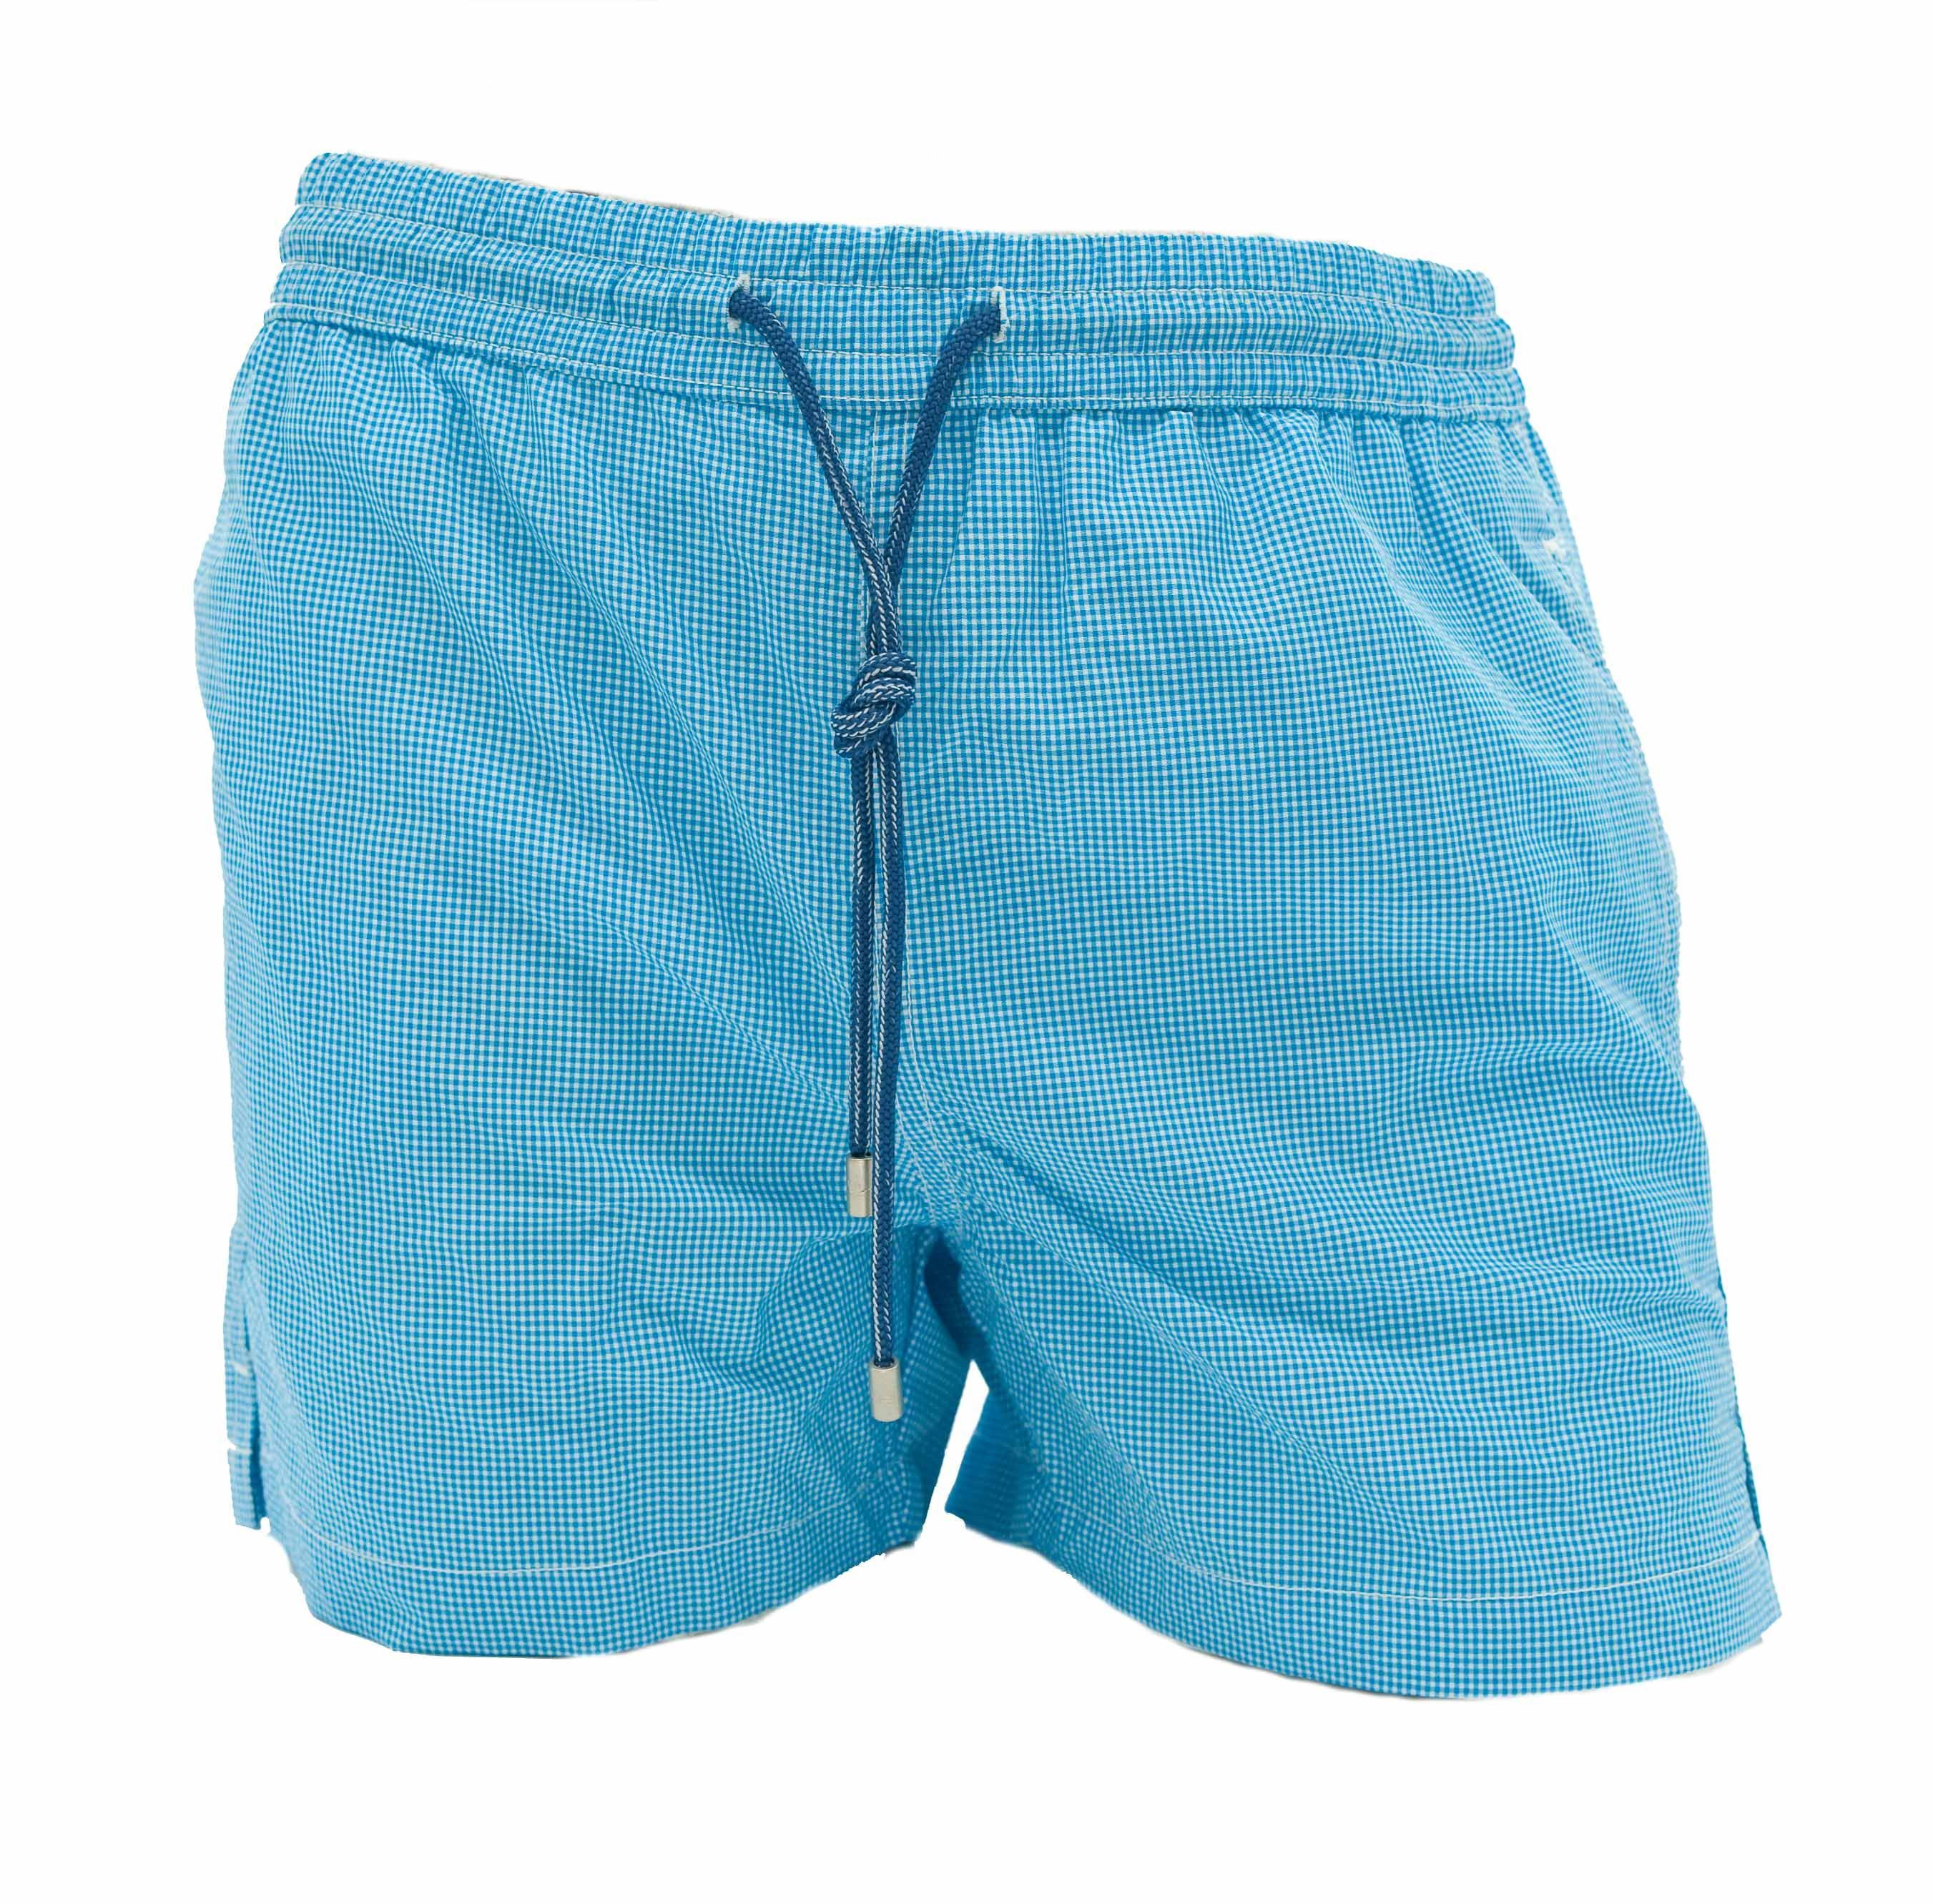 Picture of boxer swimming trunks with turquoise background